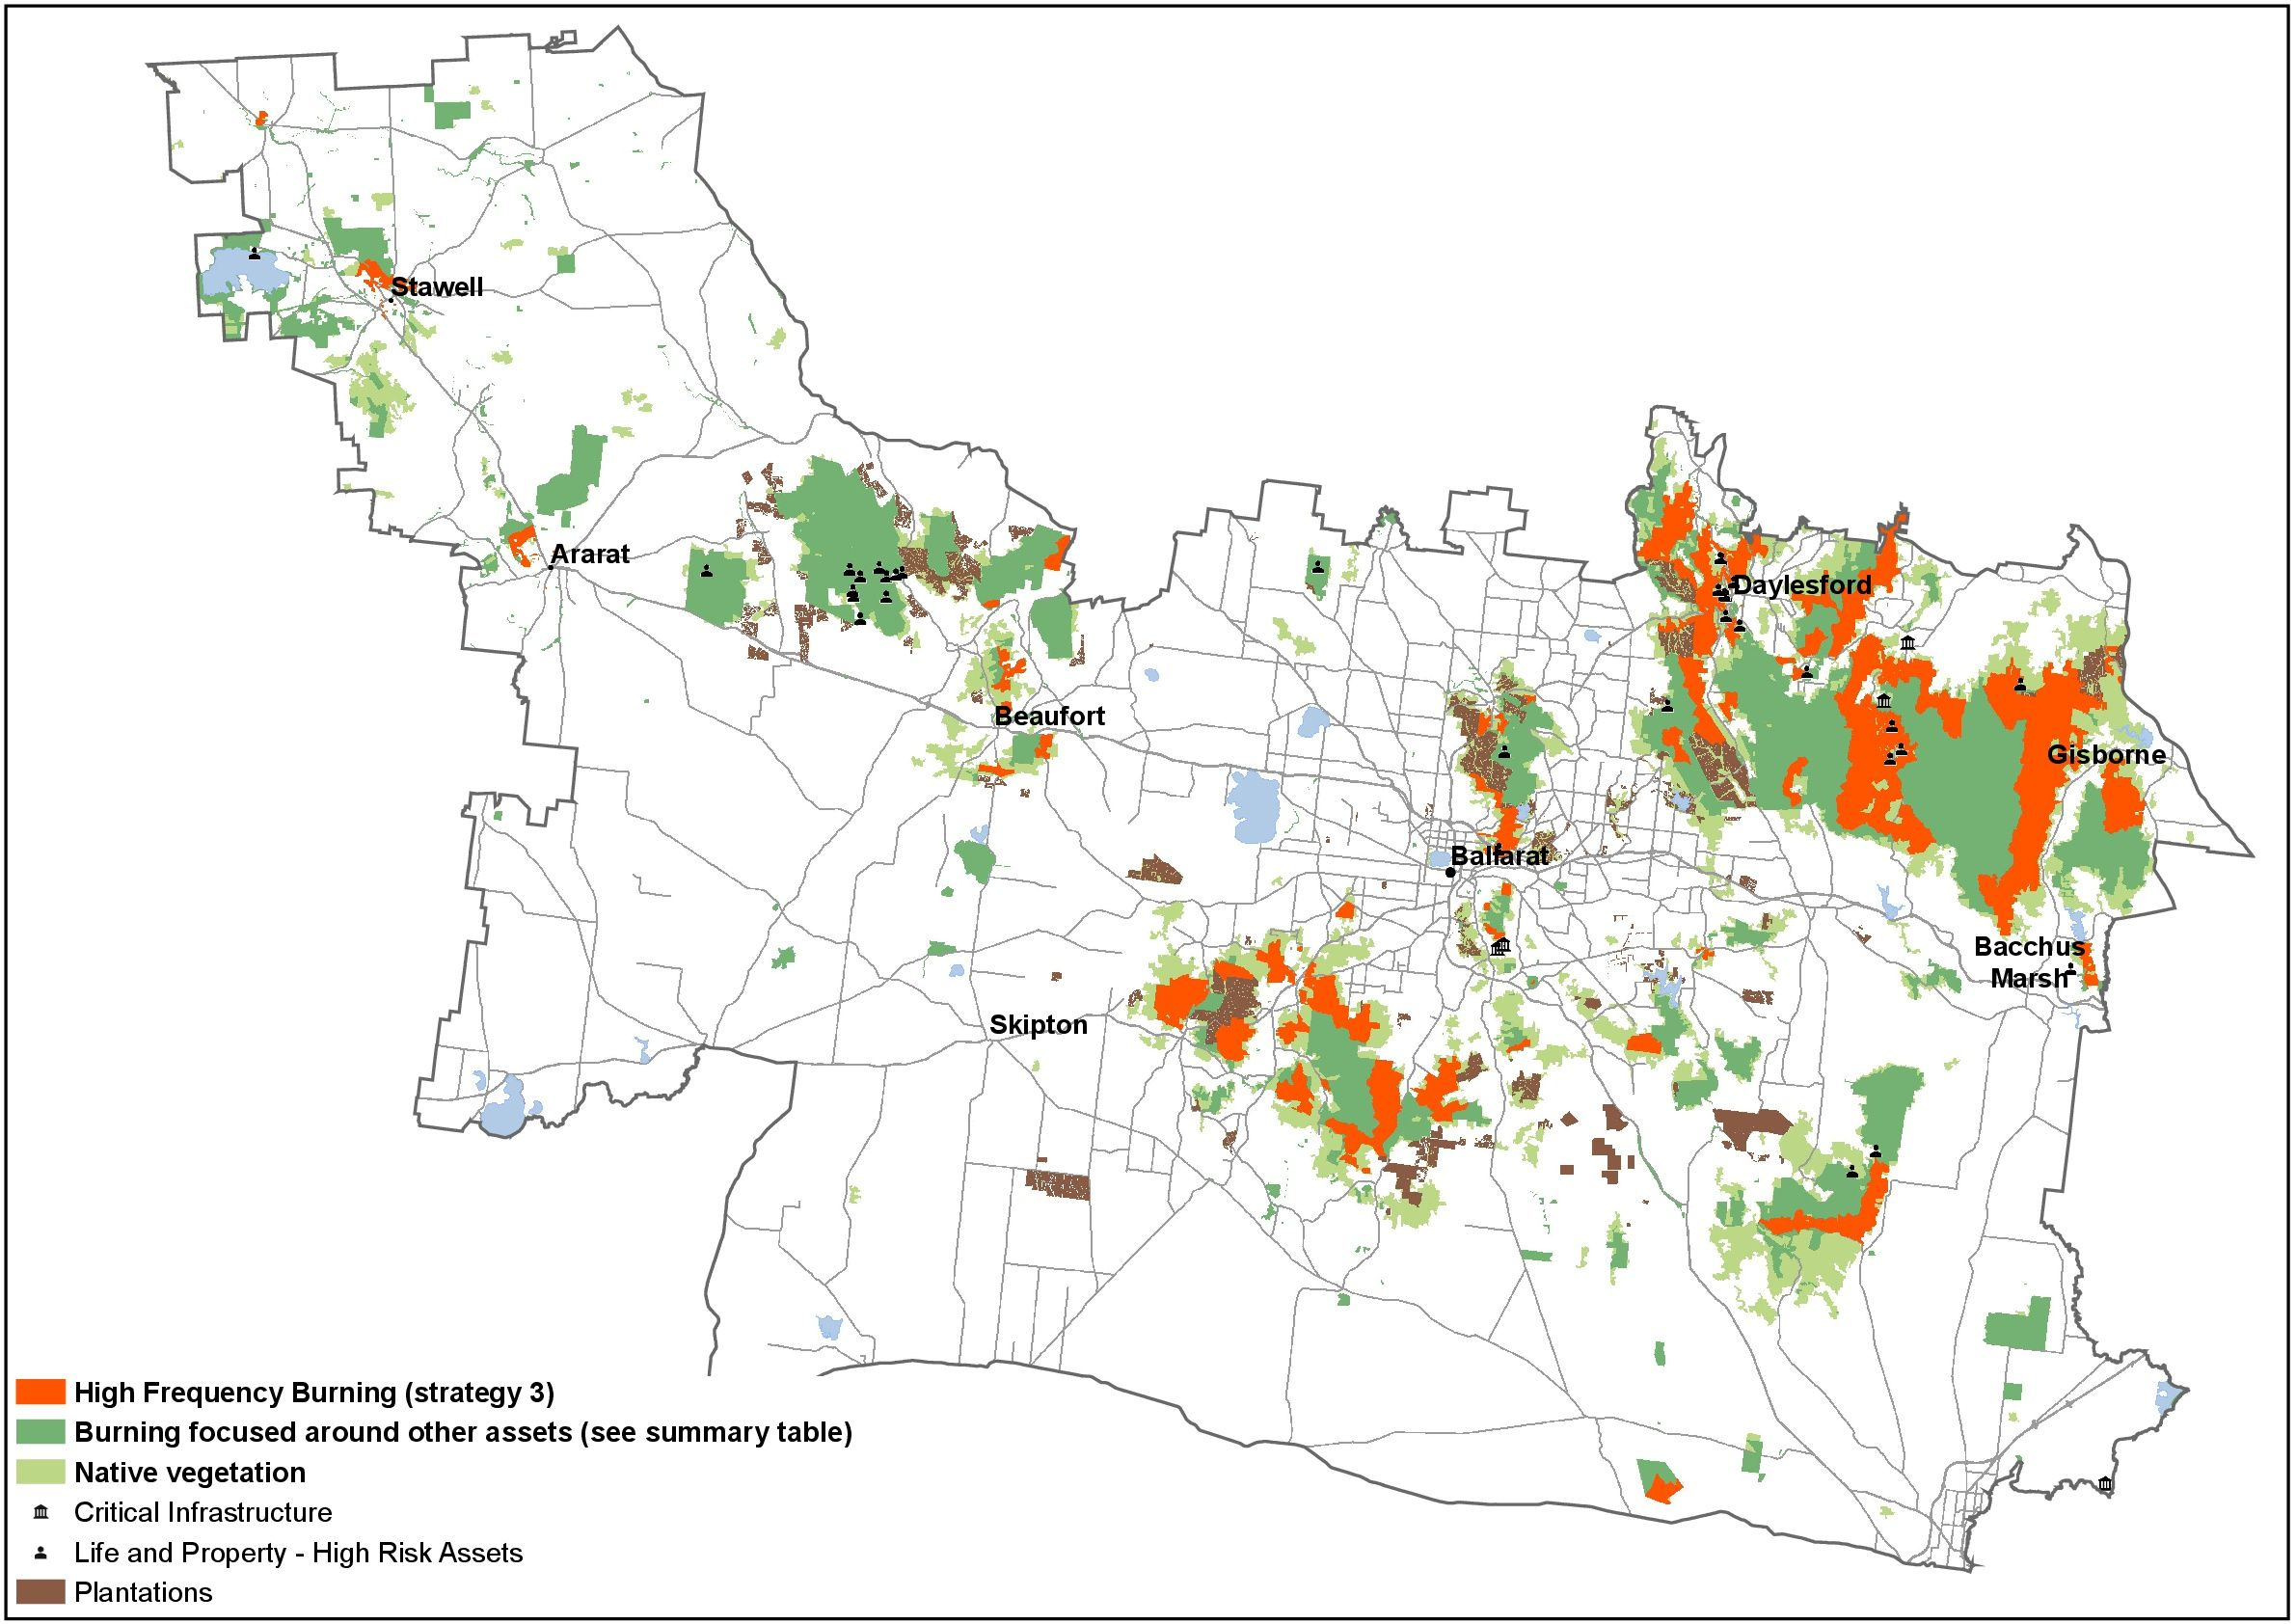 Strategy 3 consists of:  high levels of burning, concentrated around towns moderate levels of dispersed burning across the broader landscape burning focus on townships to a similar level as strategy 2, with additional burning undertaken in areas away from communities, focusing on roads, infrastructure, tourism, agriculture, plantations and campgrounds additional burning is likely to further reduce the risk to towns and adjoining private property and reduce the size of bushfires some vegetation types depend on fire for regeneration and focusing our planned burning around towns and assets will have mixed results for plants and animals.